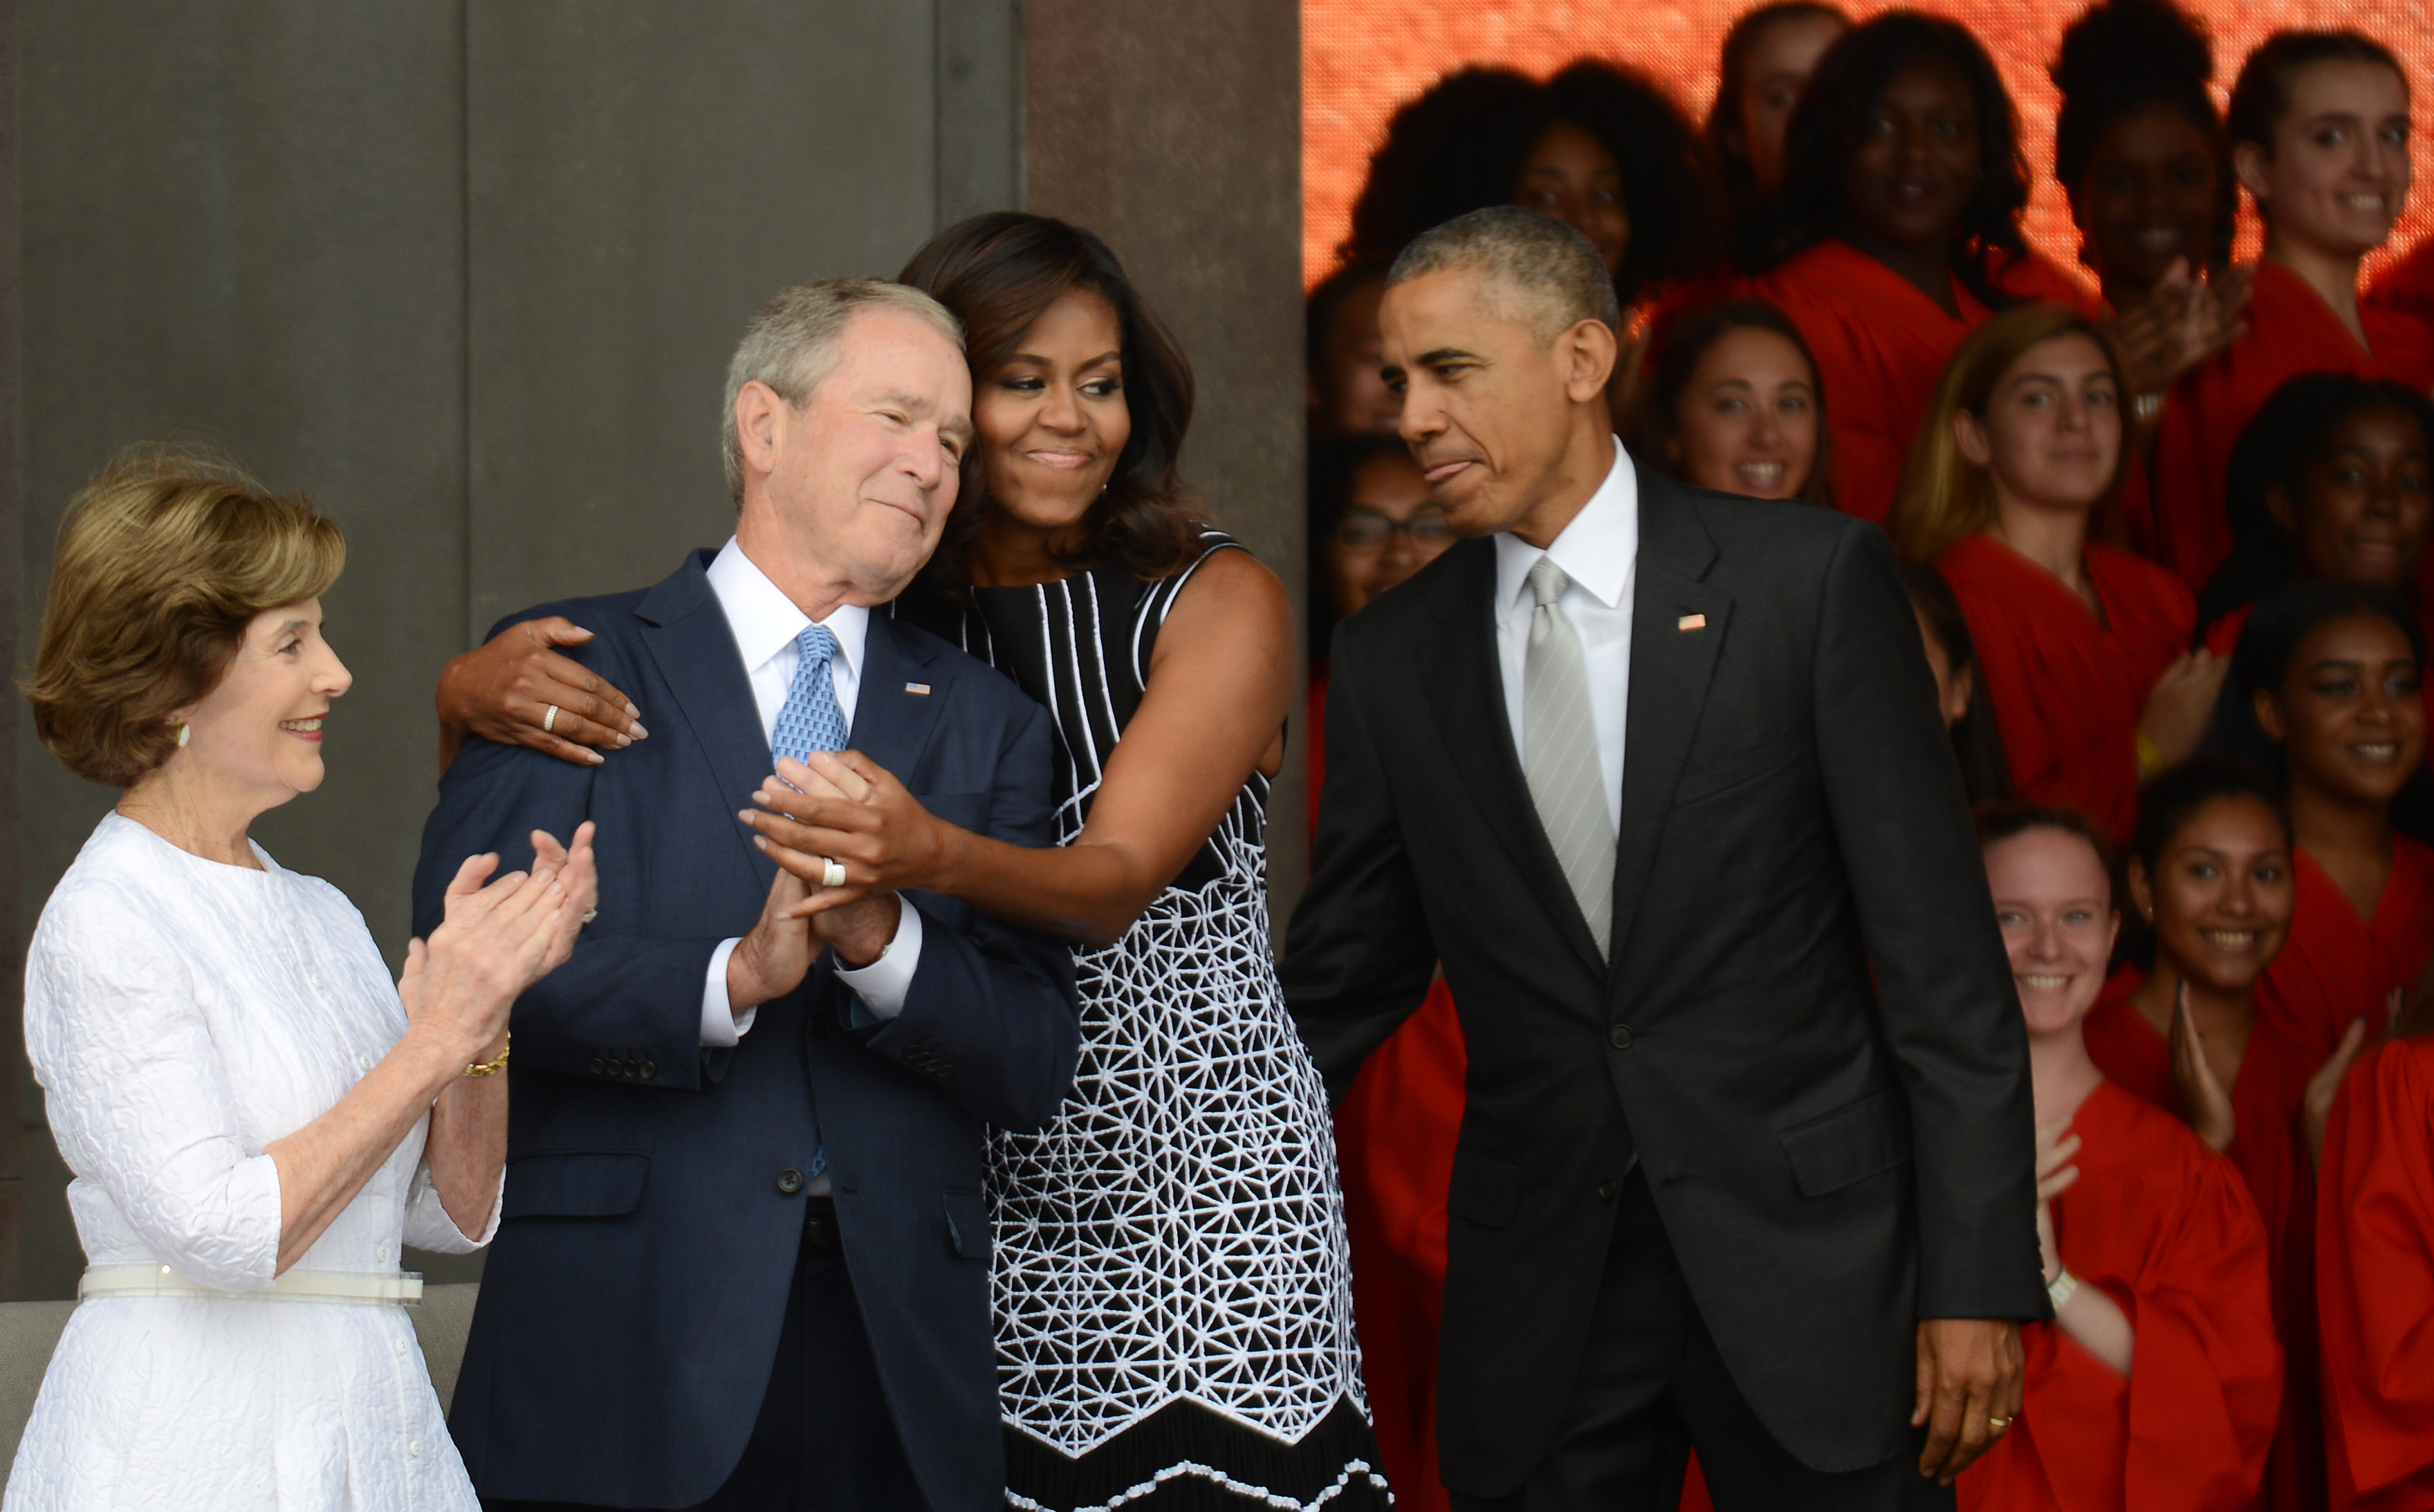 President Barack Obama watches first lady Michelle Obama embracing former president George Bush, accompanied by his wife, former first lady Laura Bush.